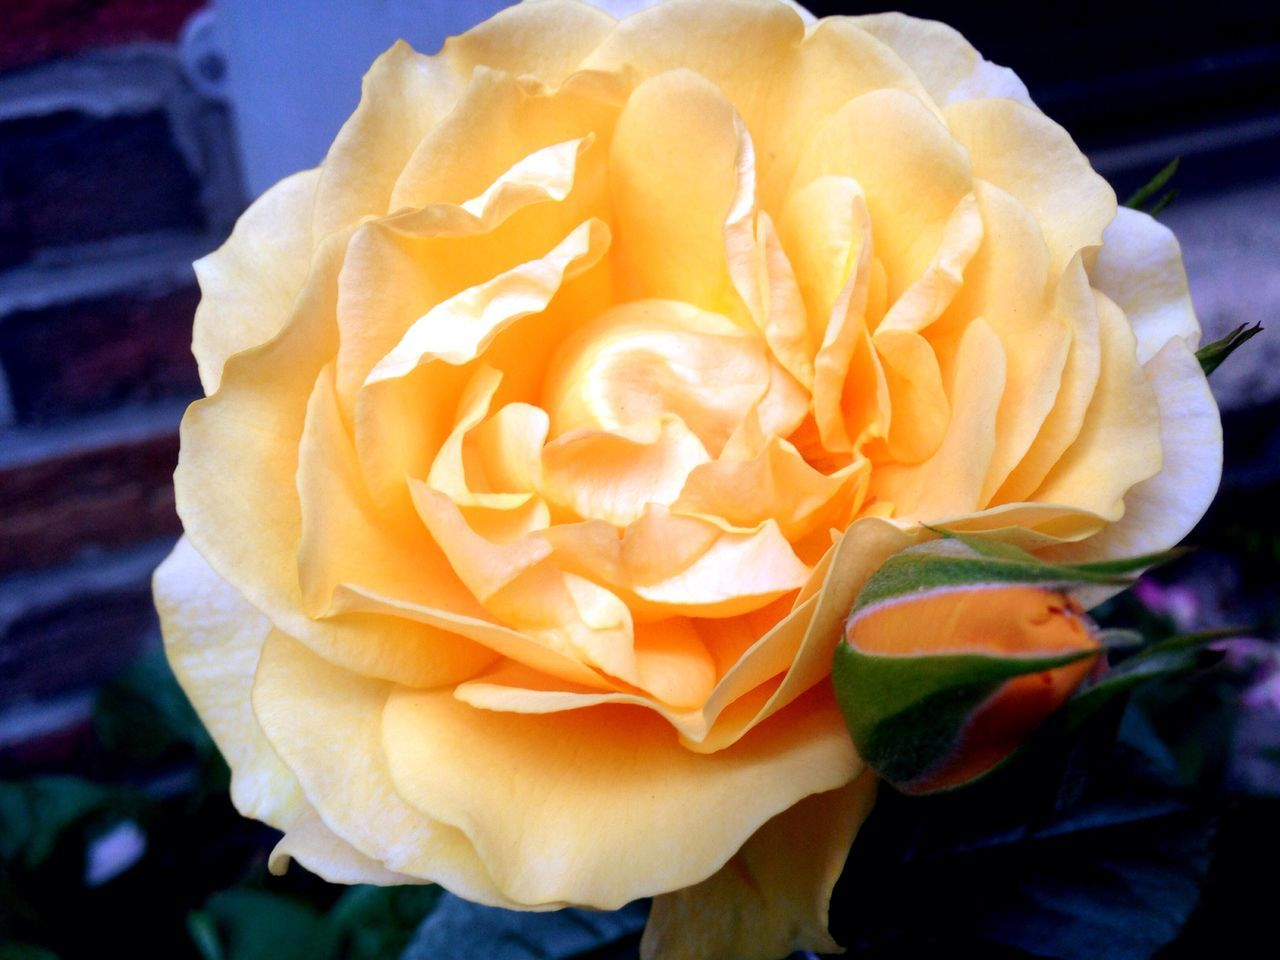 flower, petal, freshness, beauty in nature, rose - flower, fragility, flower head, nature, close-up, no people, blooming, outdoors, growth, plant, day